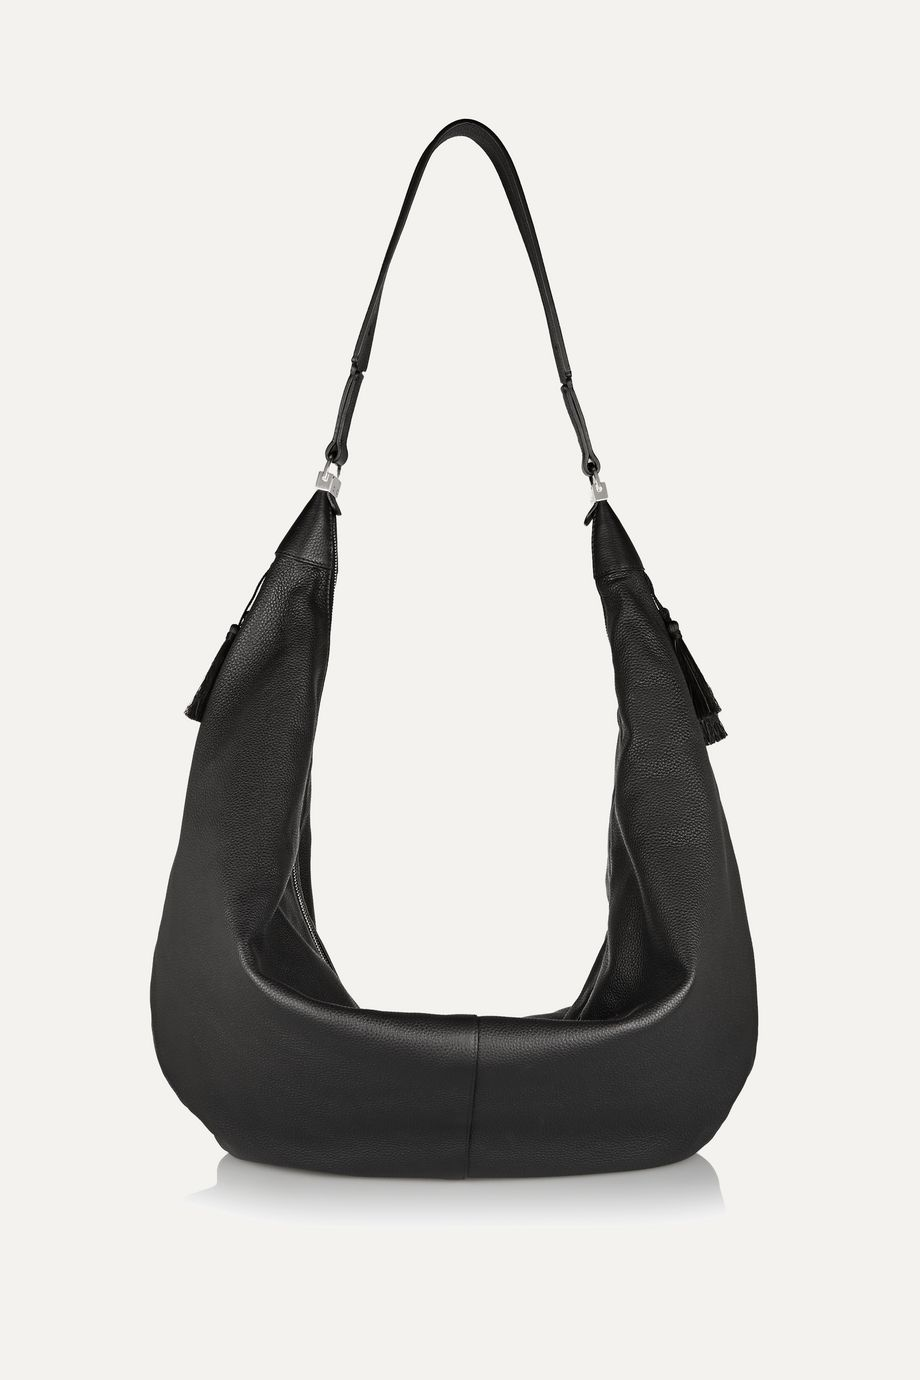 The Row The Sling leather shoulder bag